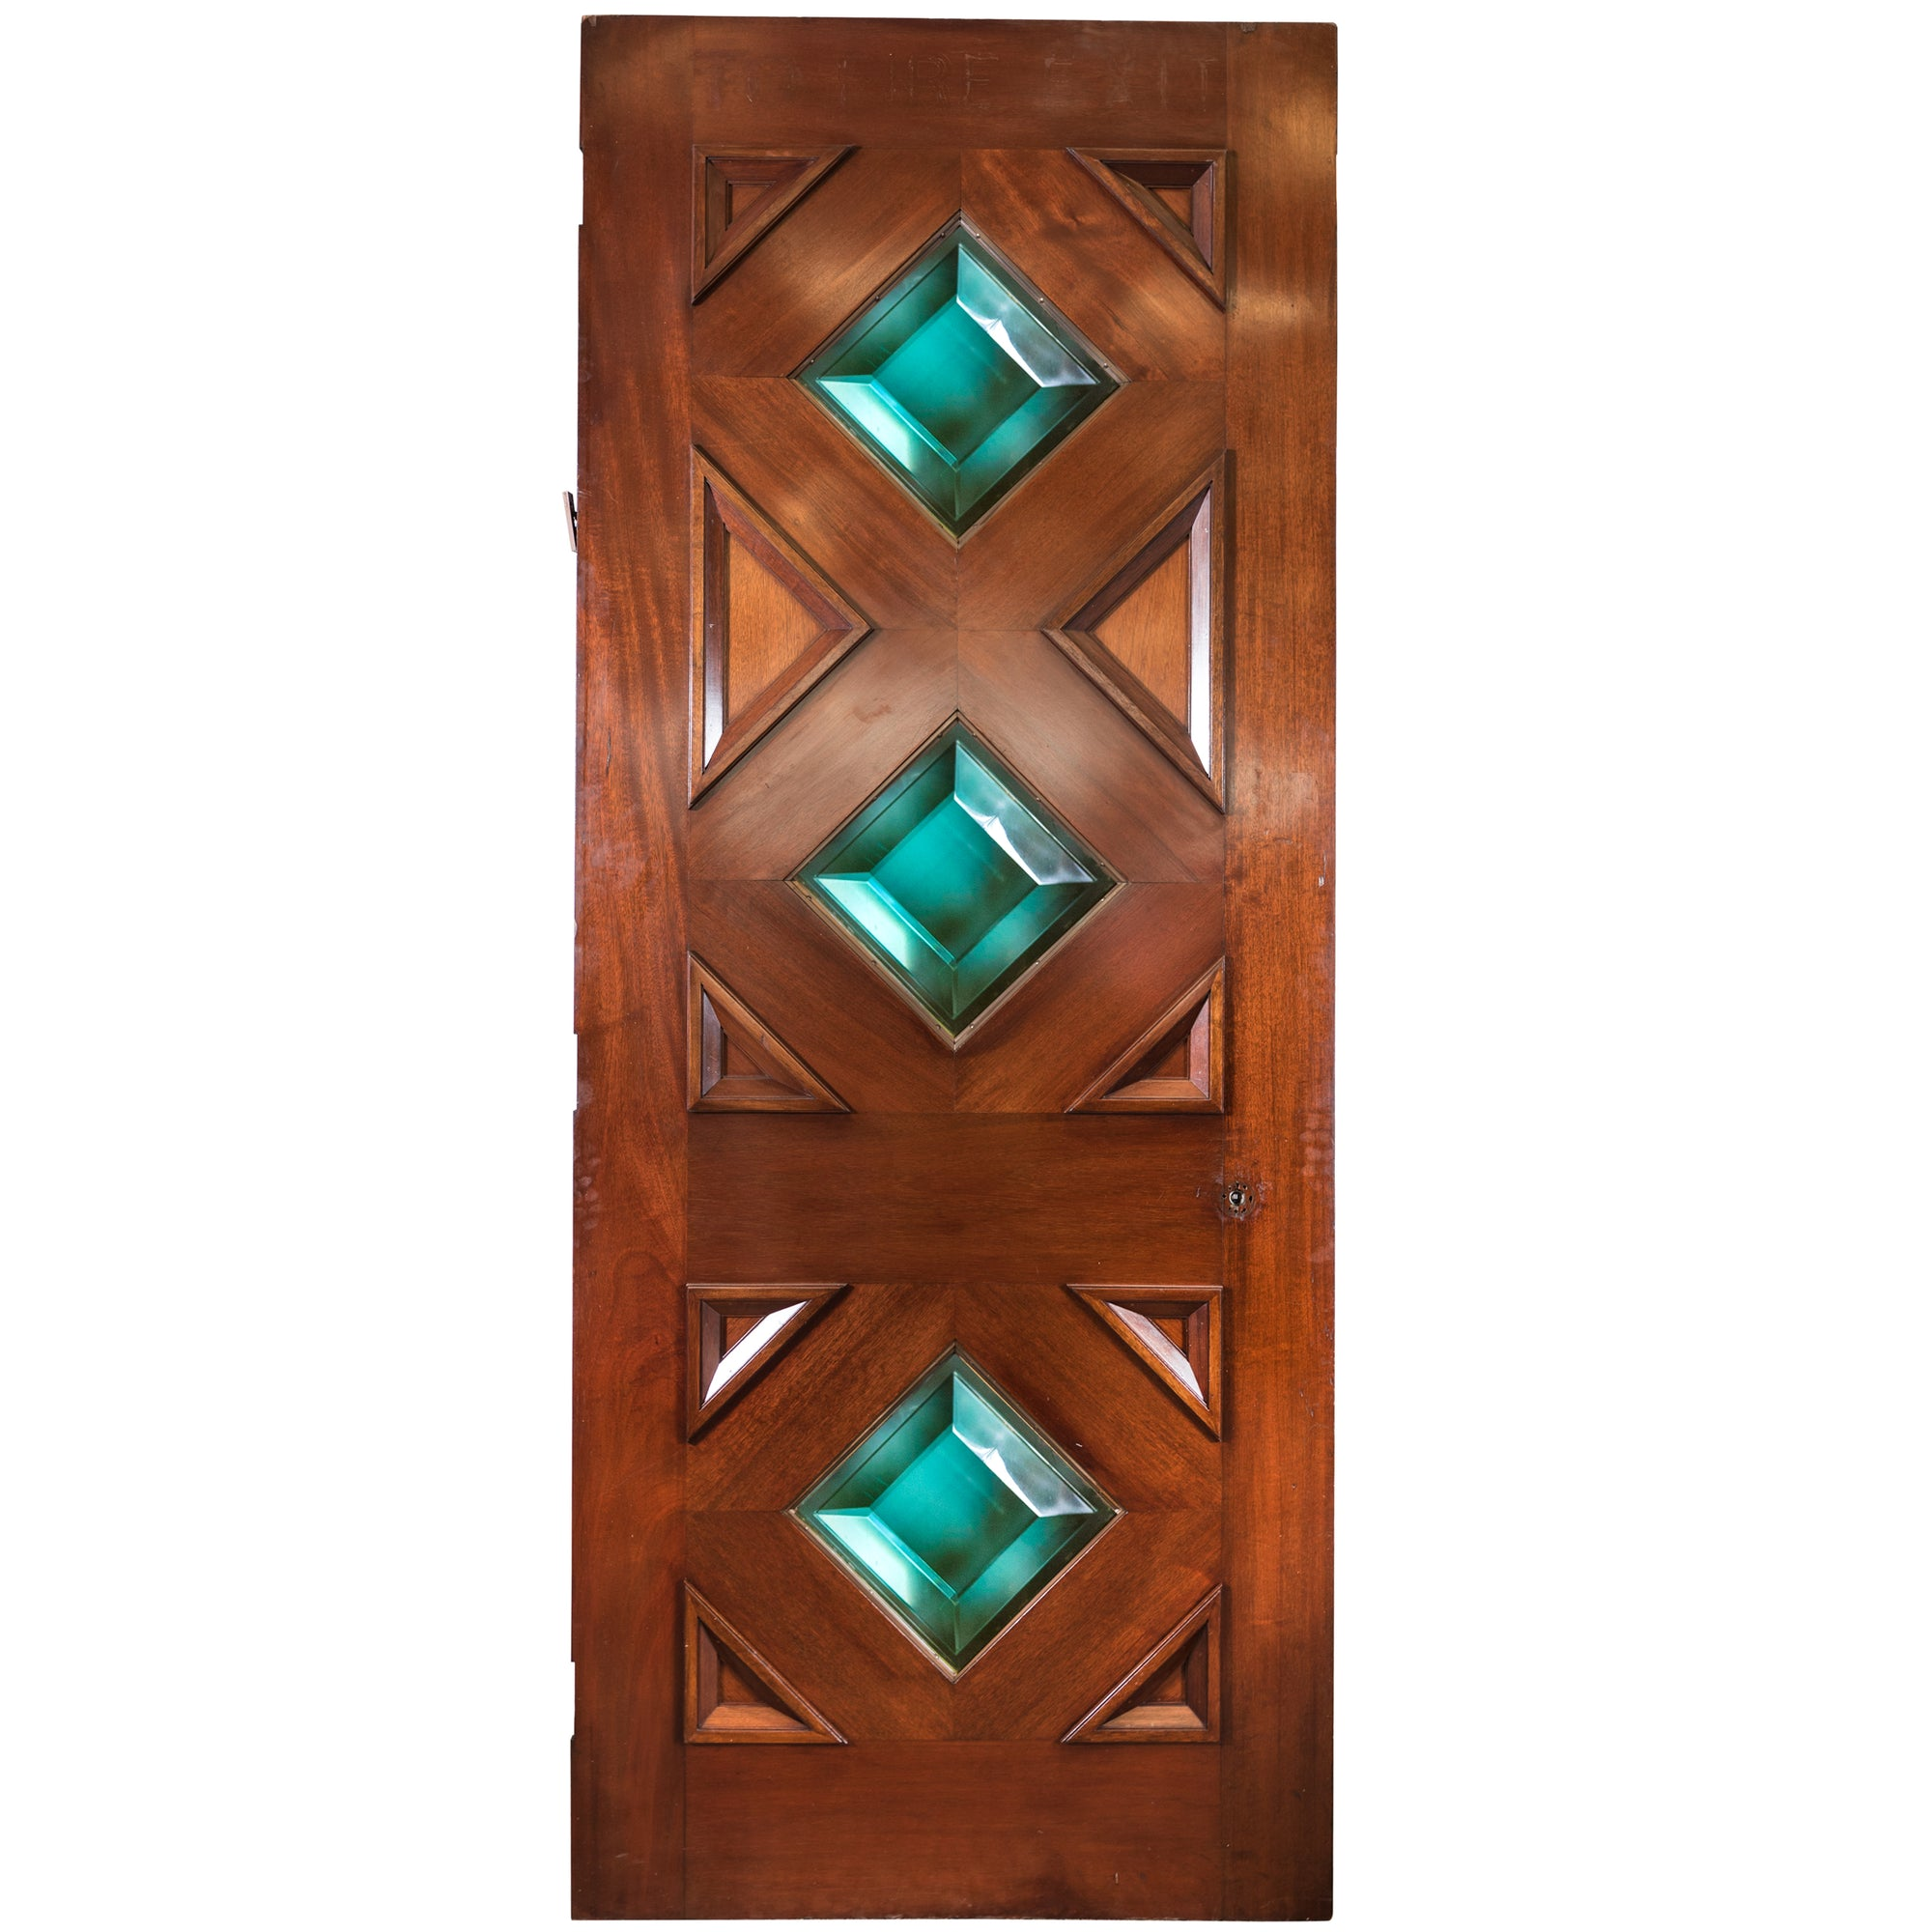 Reclaimed Solid Mahogany Door with Diamond Glazing